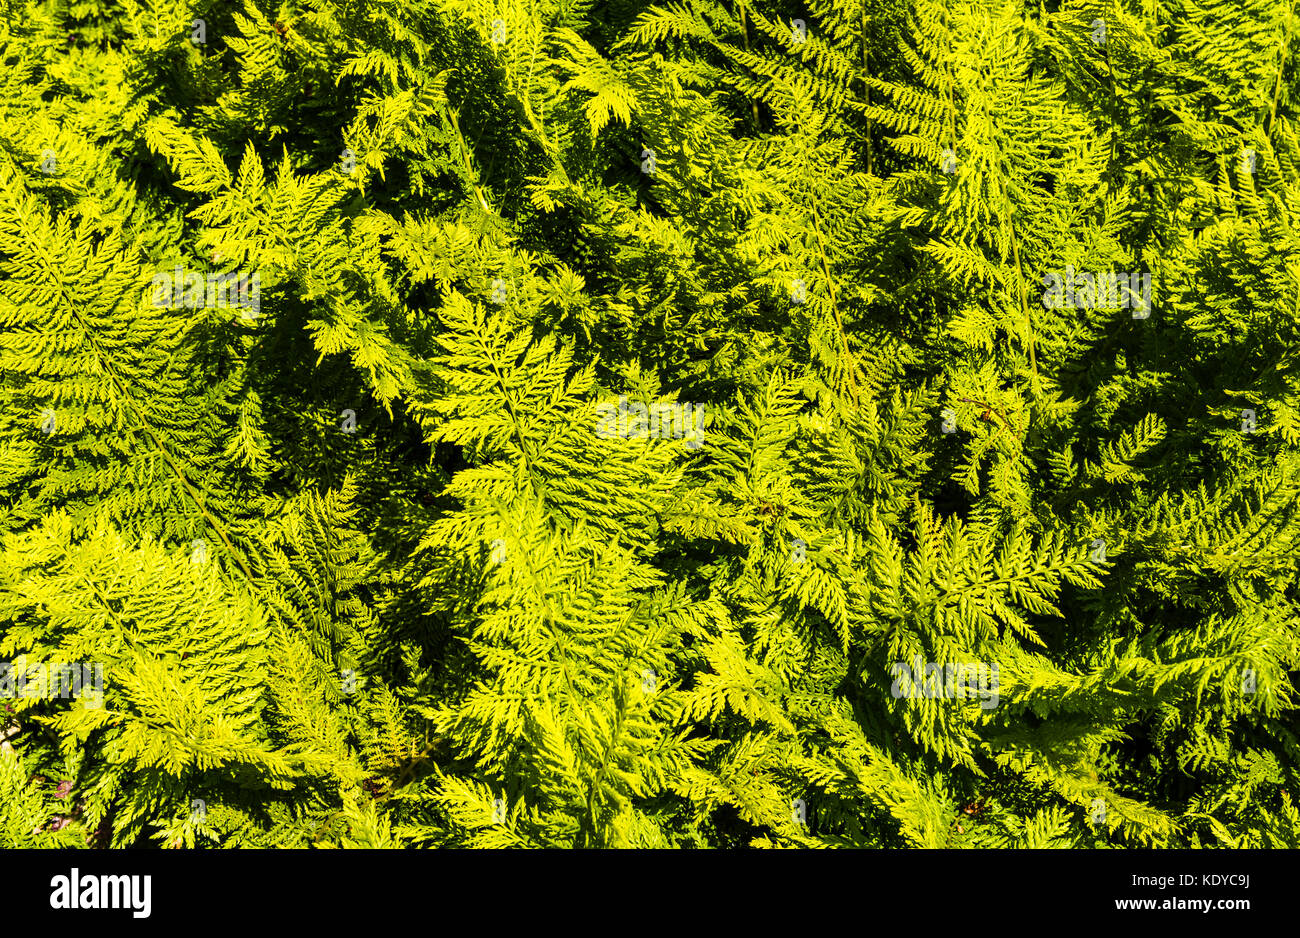 Swathe of fern fronds at Sissinghurst Gardens, Kent, UK - Stock Image